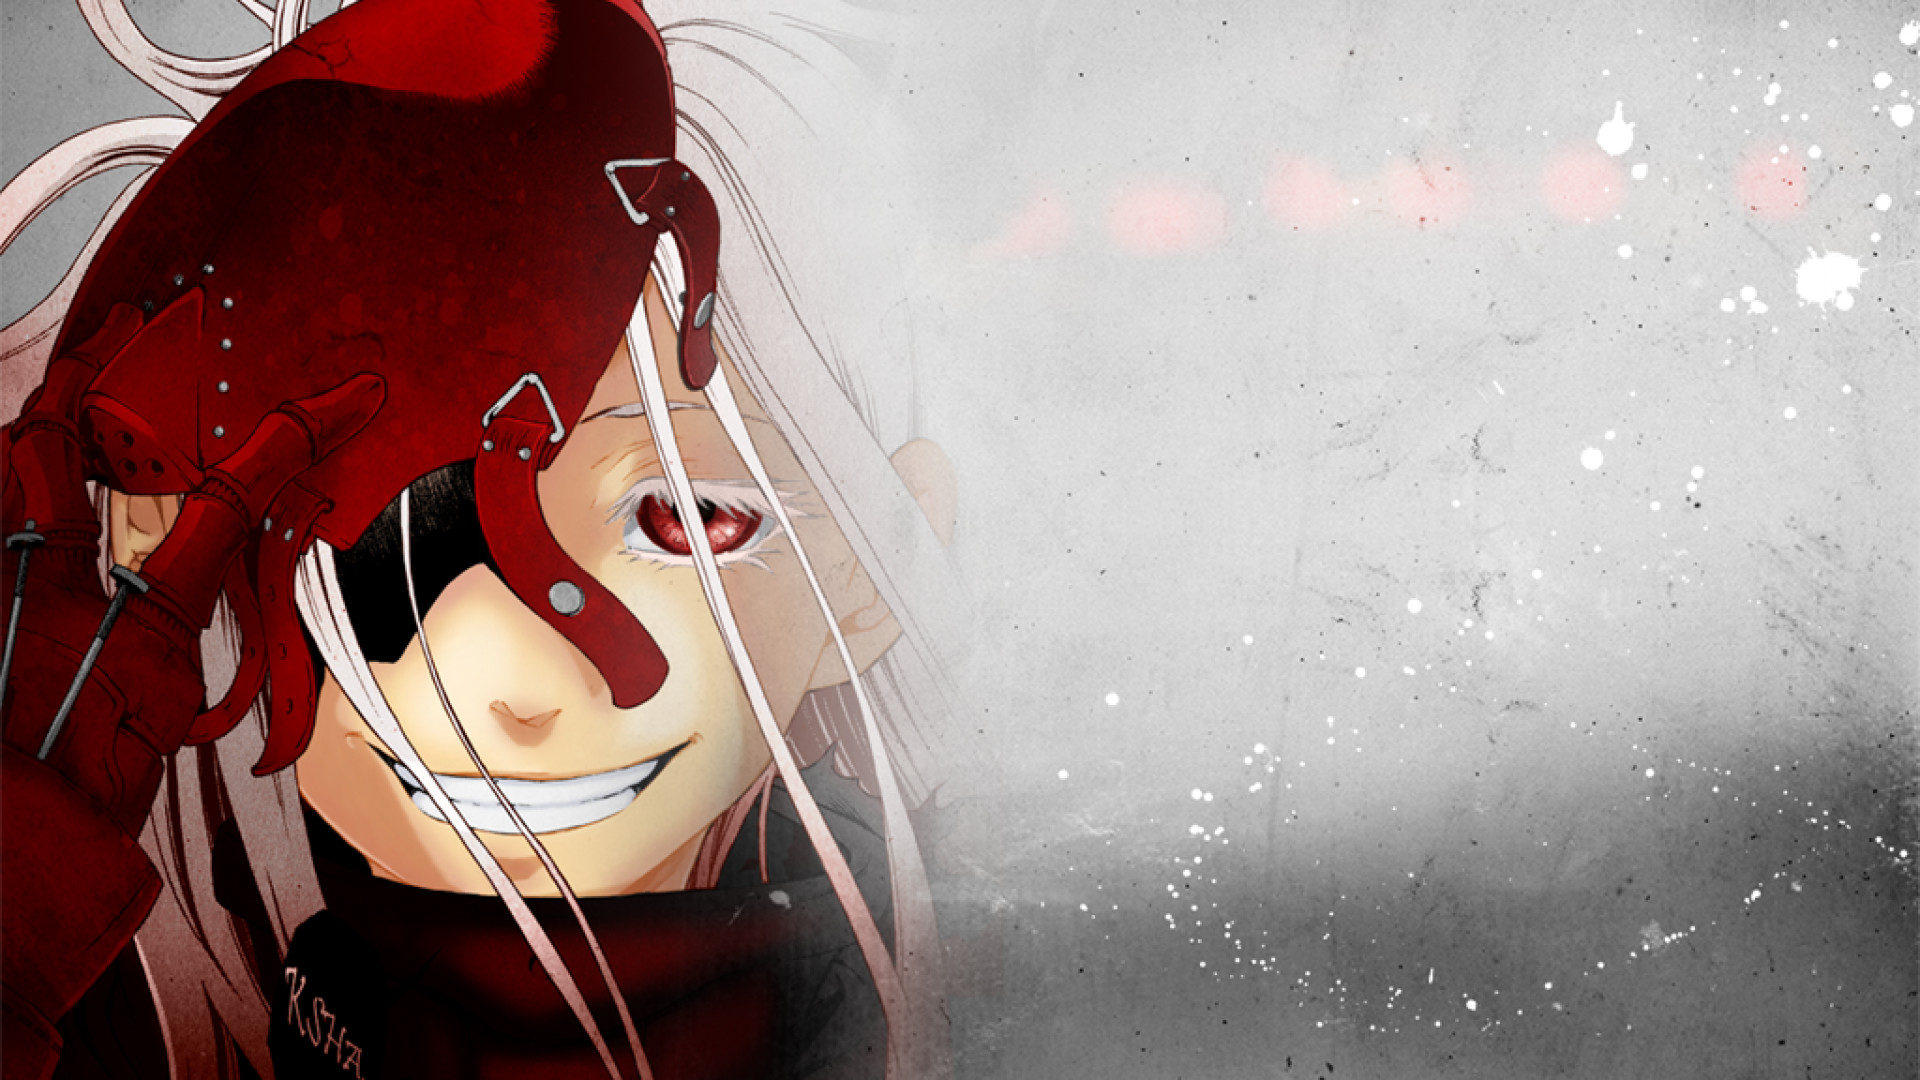 1920x1080 Wallpaper : 1366x768 px, Deadman Wonderland, Ganta, Shiro Deadman